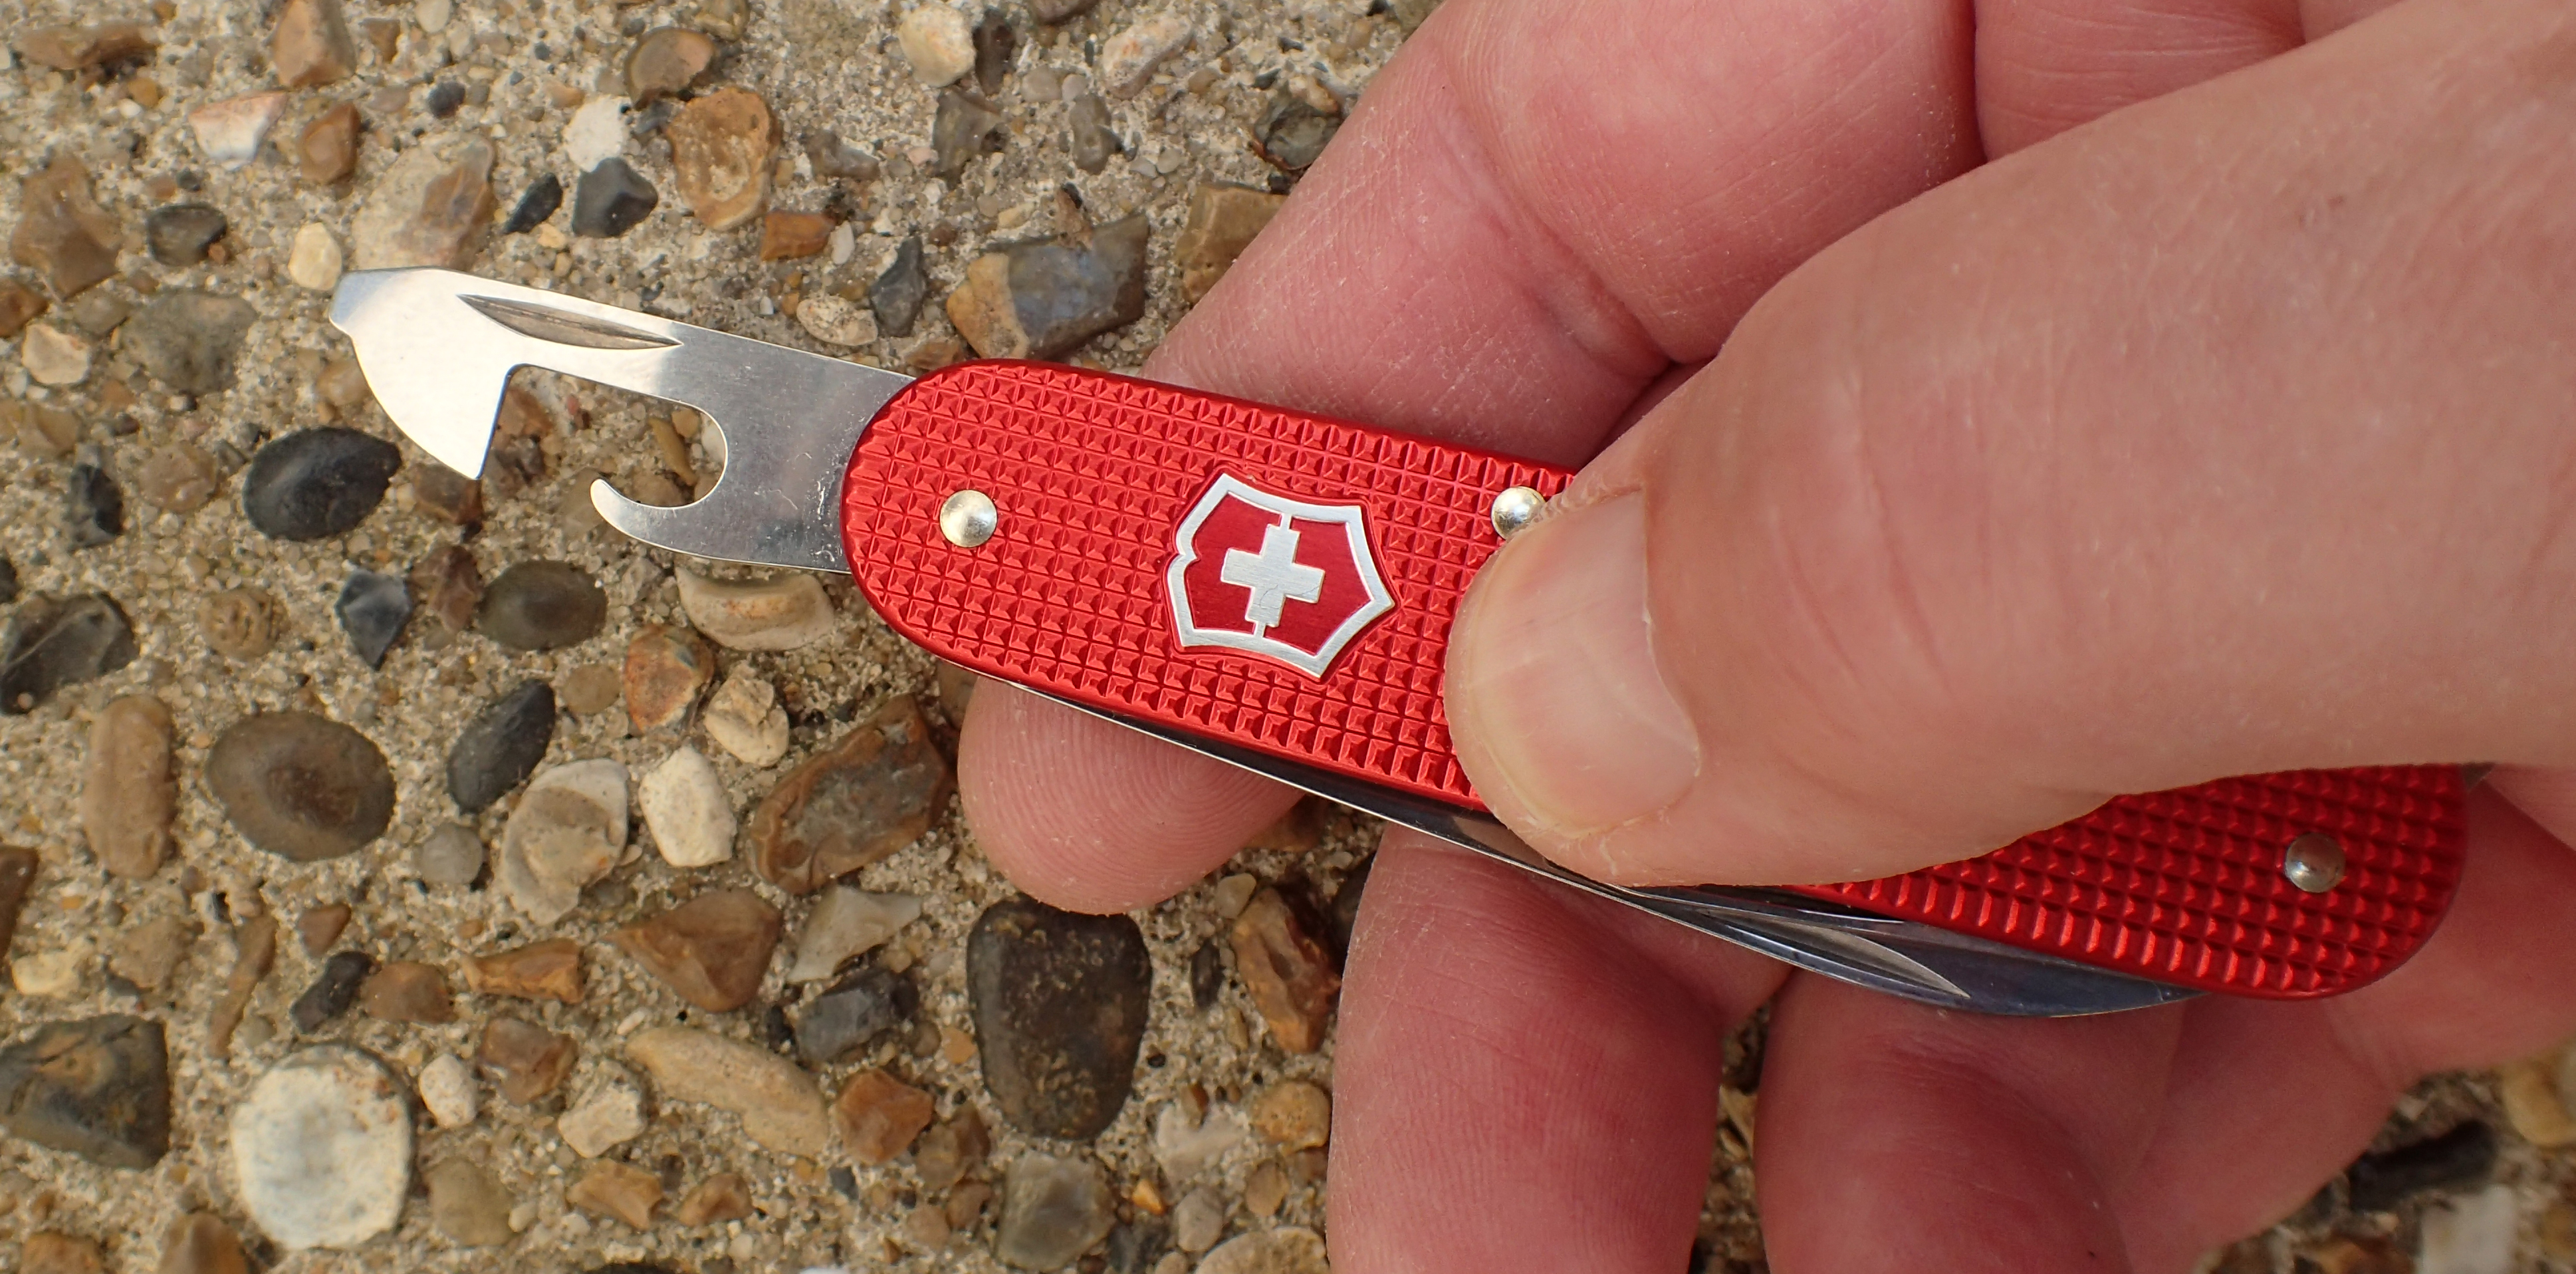 The 84mm Victorinox Alox Cadet weighs 45.9g and includes a really efficient tin opener